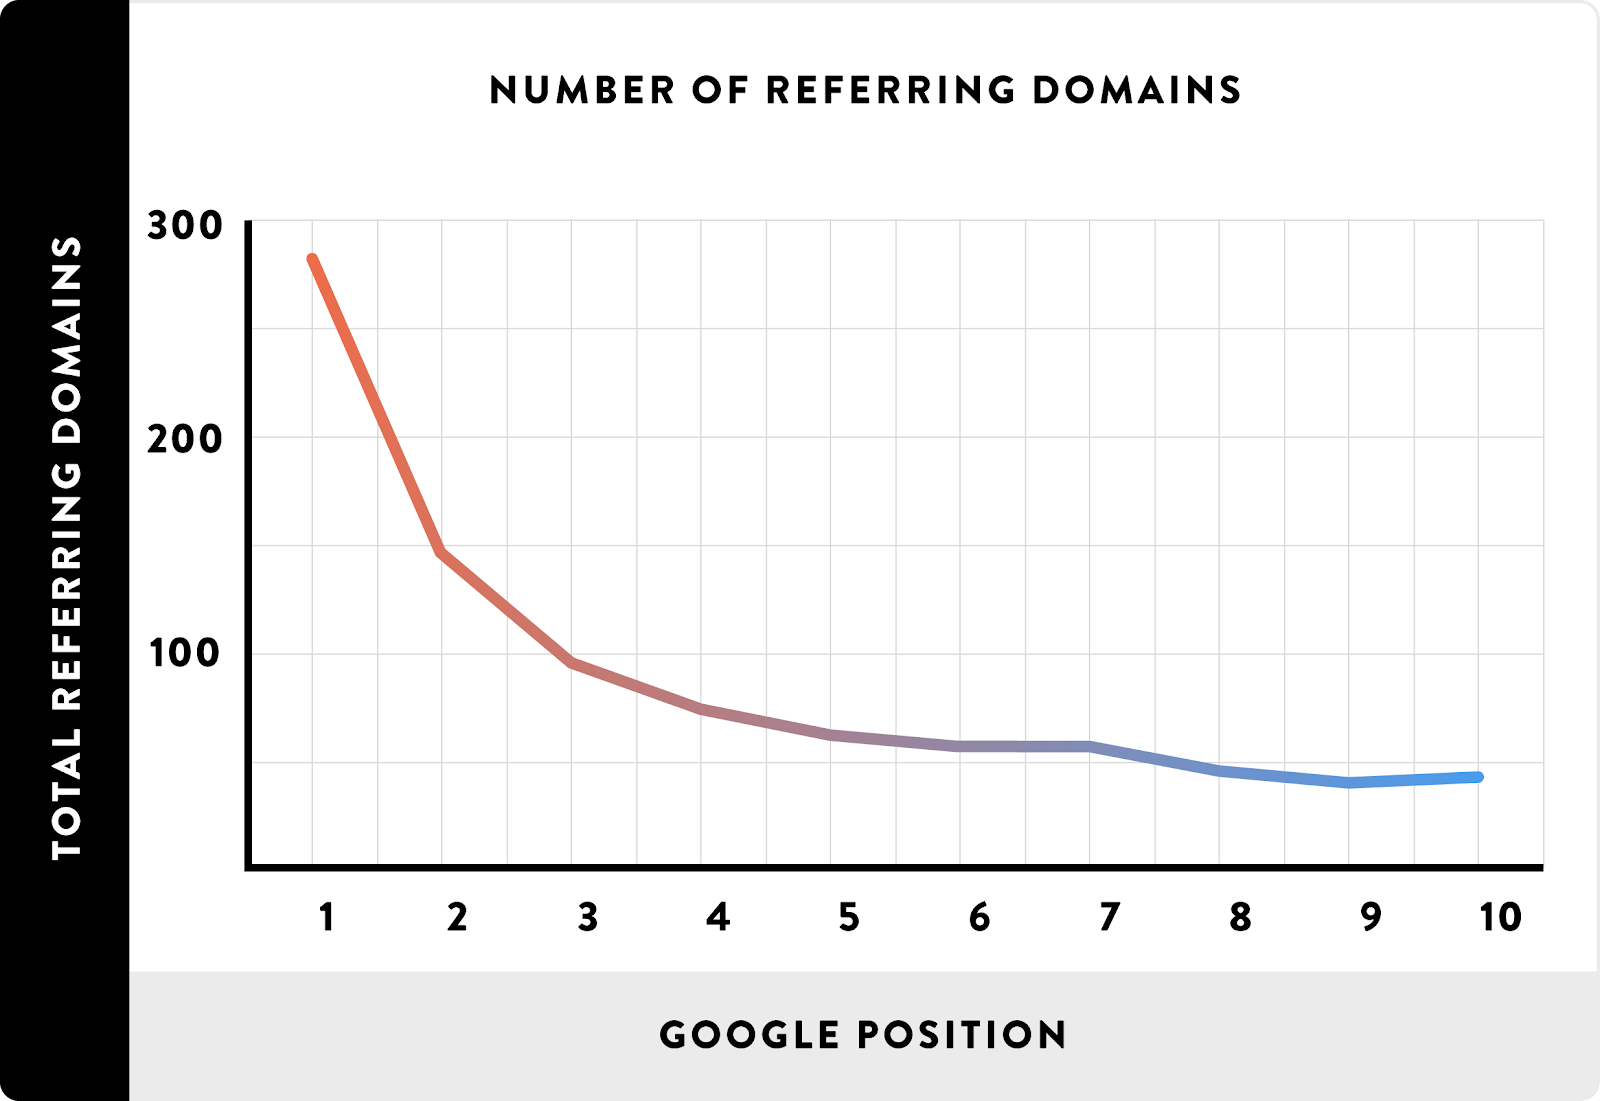 Correlation between number of referring domains and search rankings